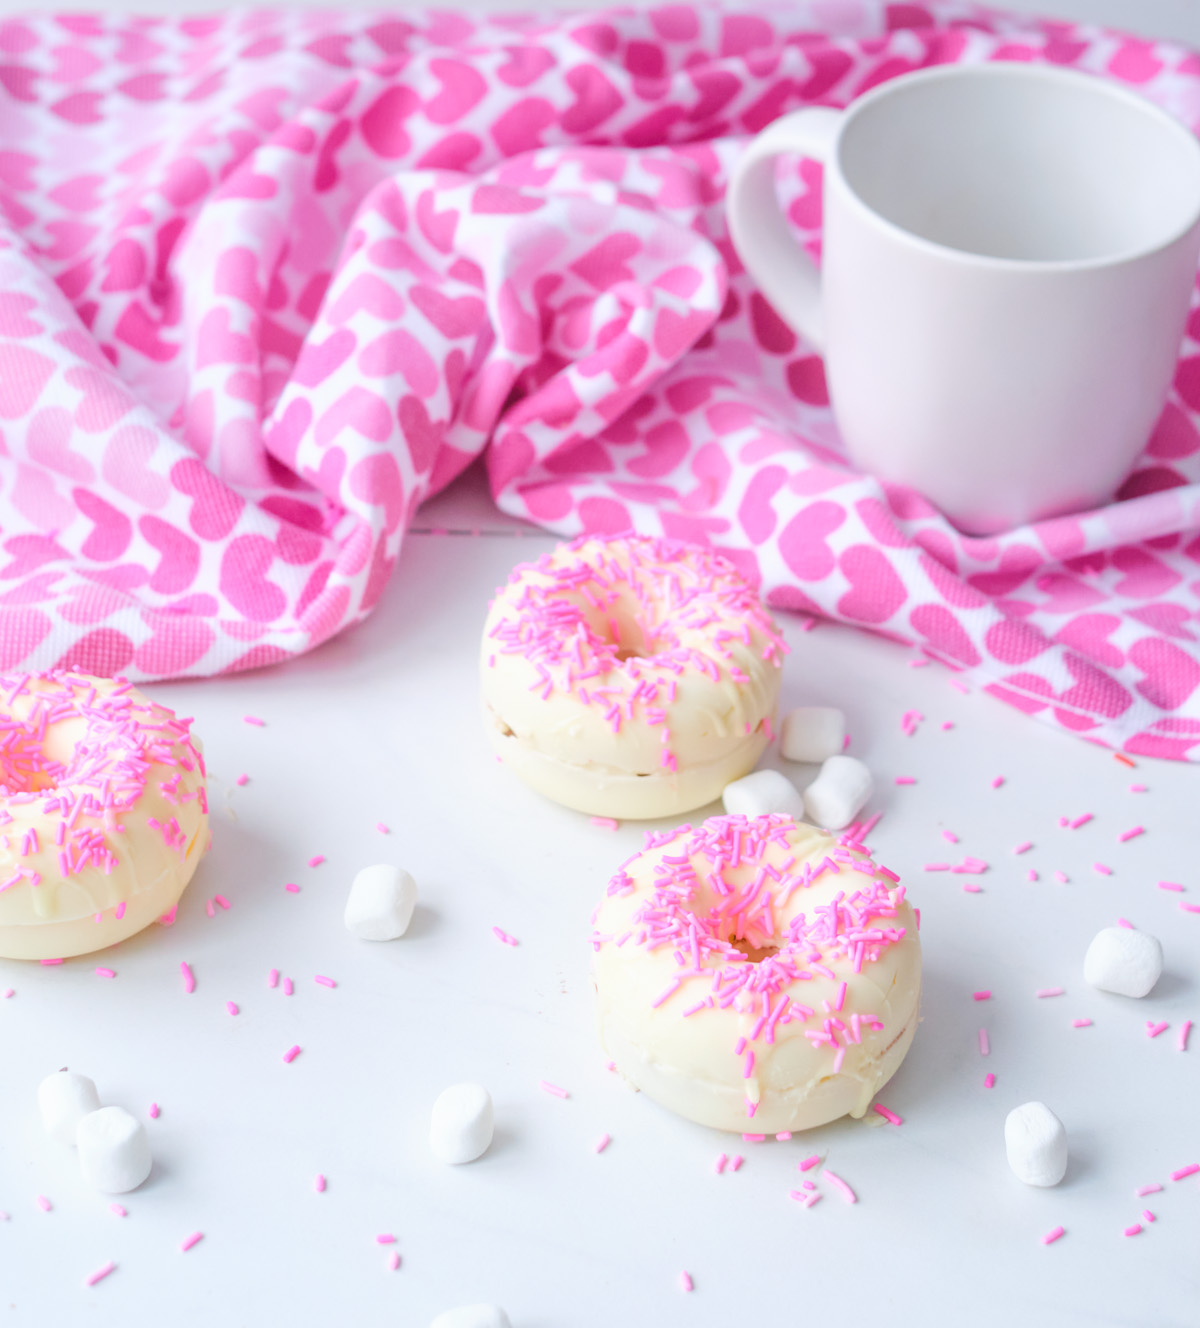 Donut White Chocolate Hot Cocoa Bomb With Sprinkles